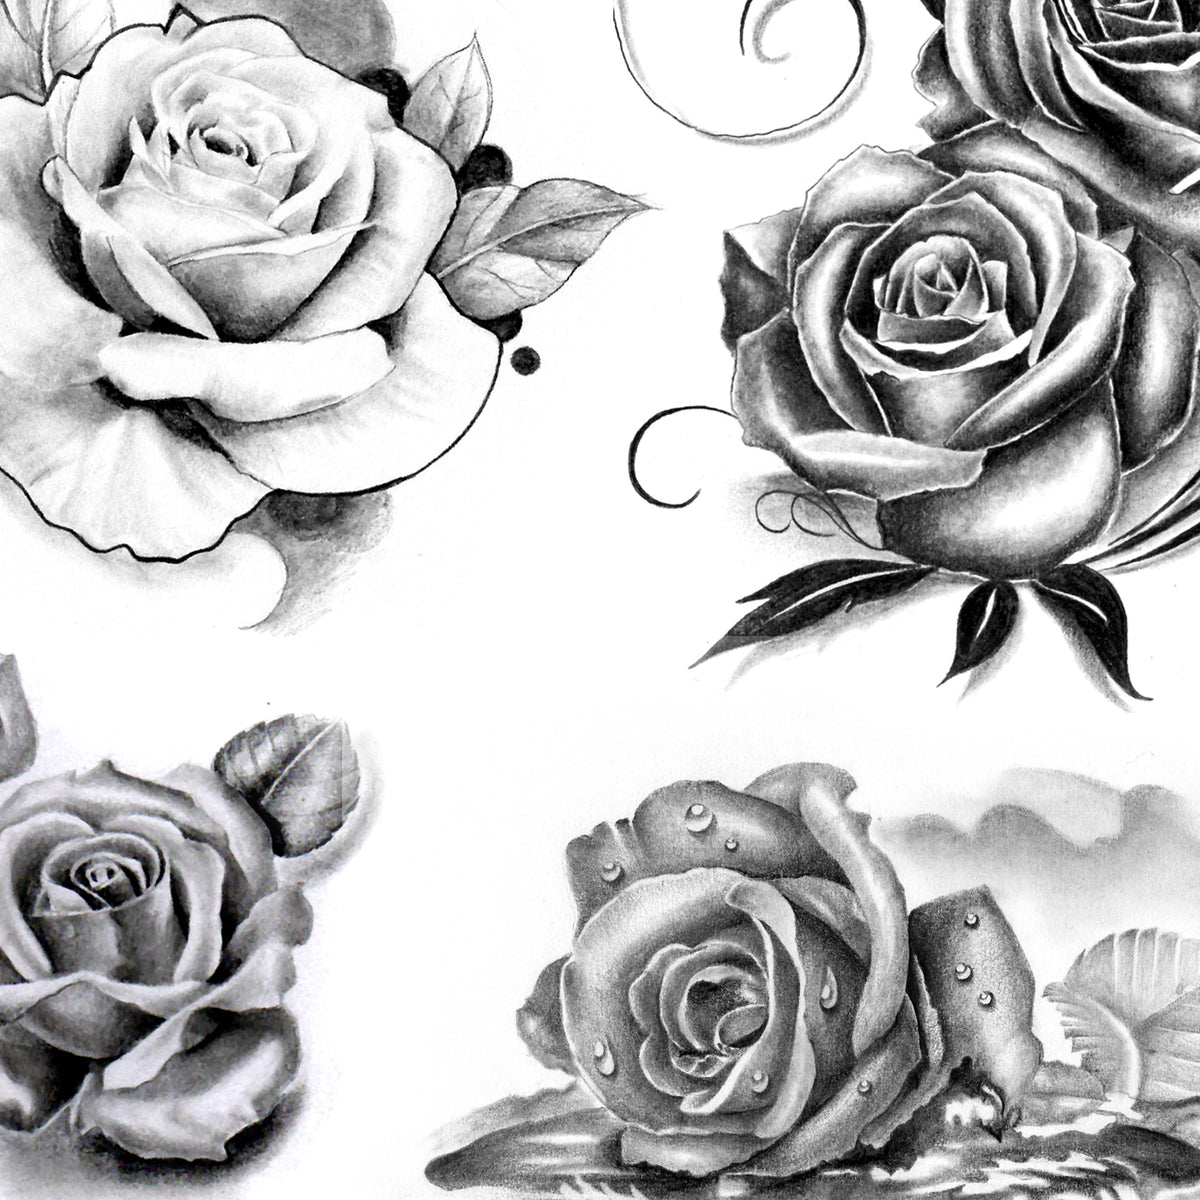 Rose Henna by chibiTwins on DeviantArt |Realistic Rose Tattoos Henna Designs